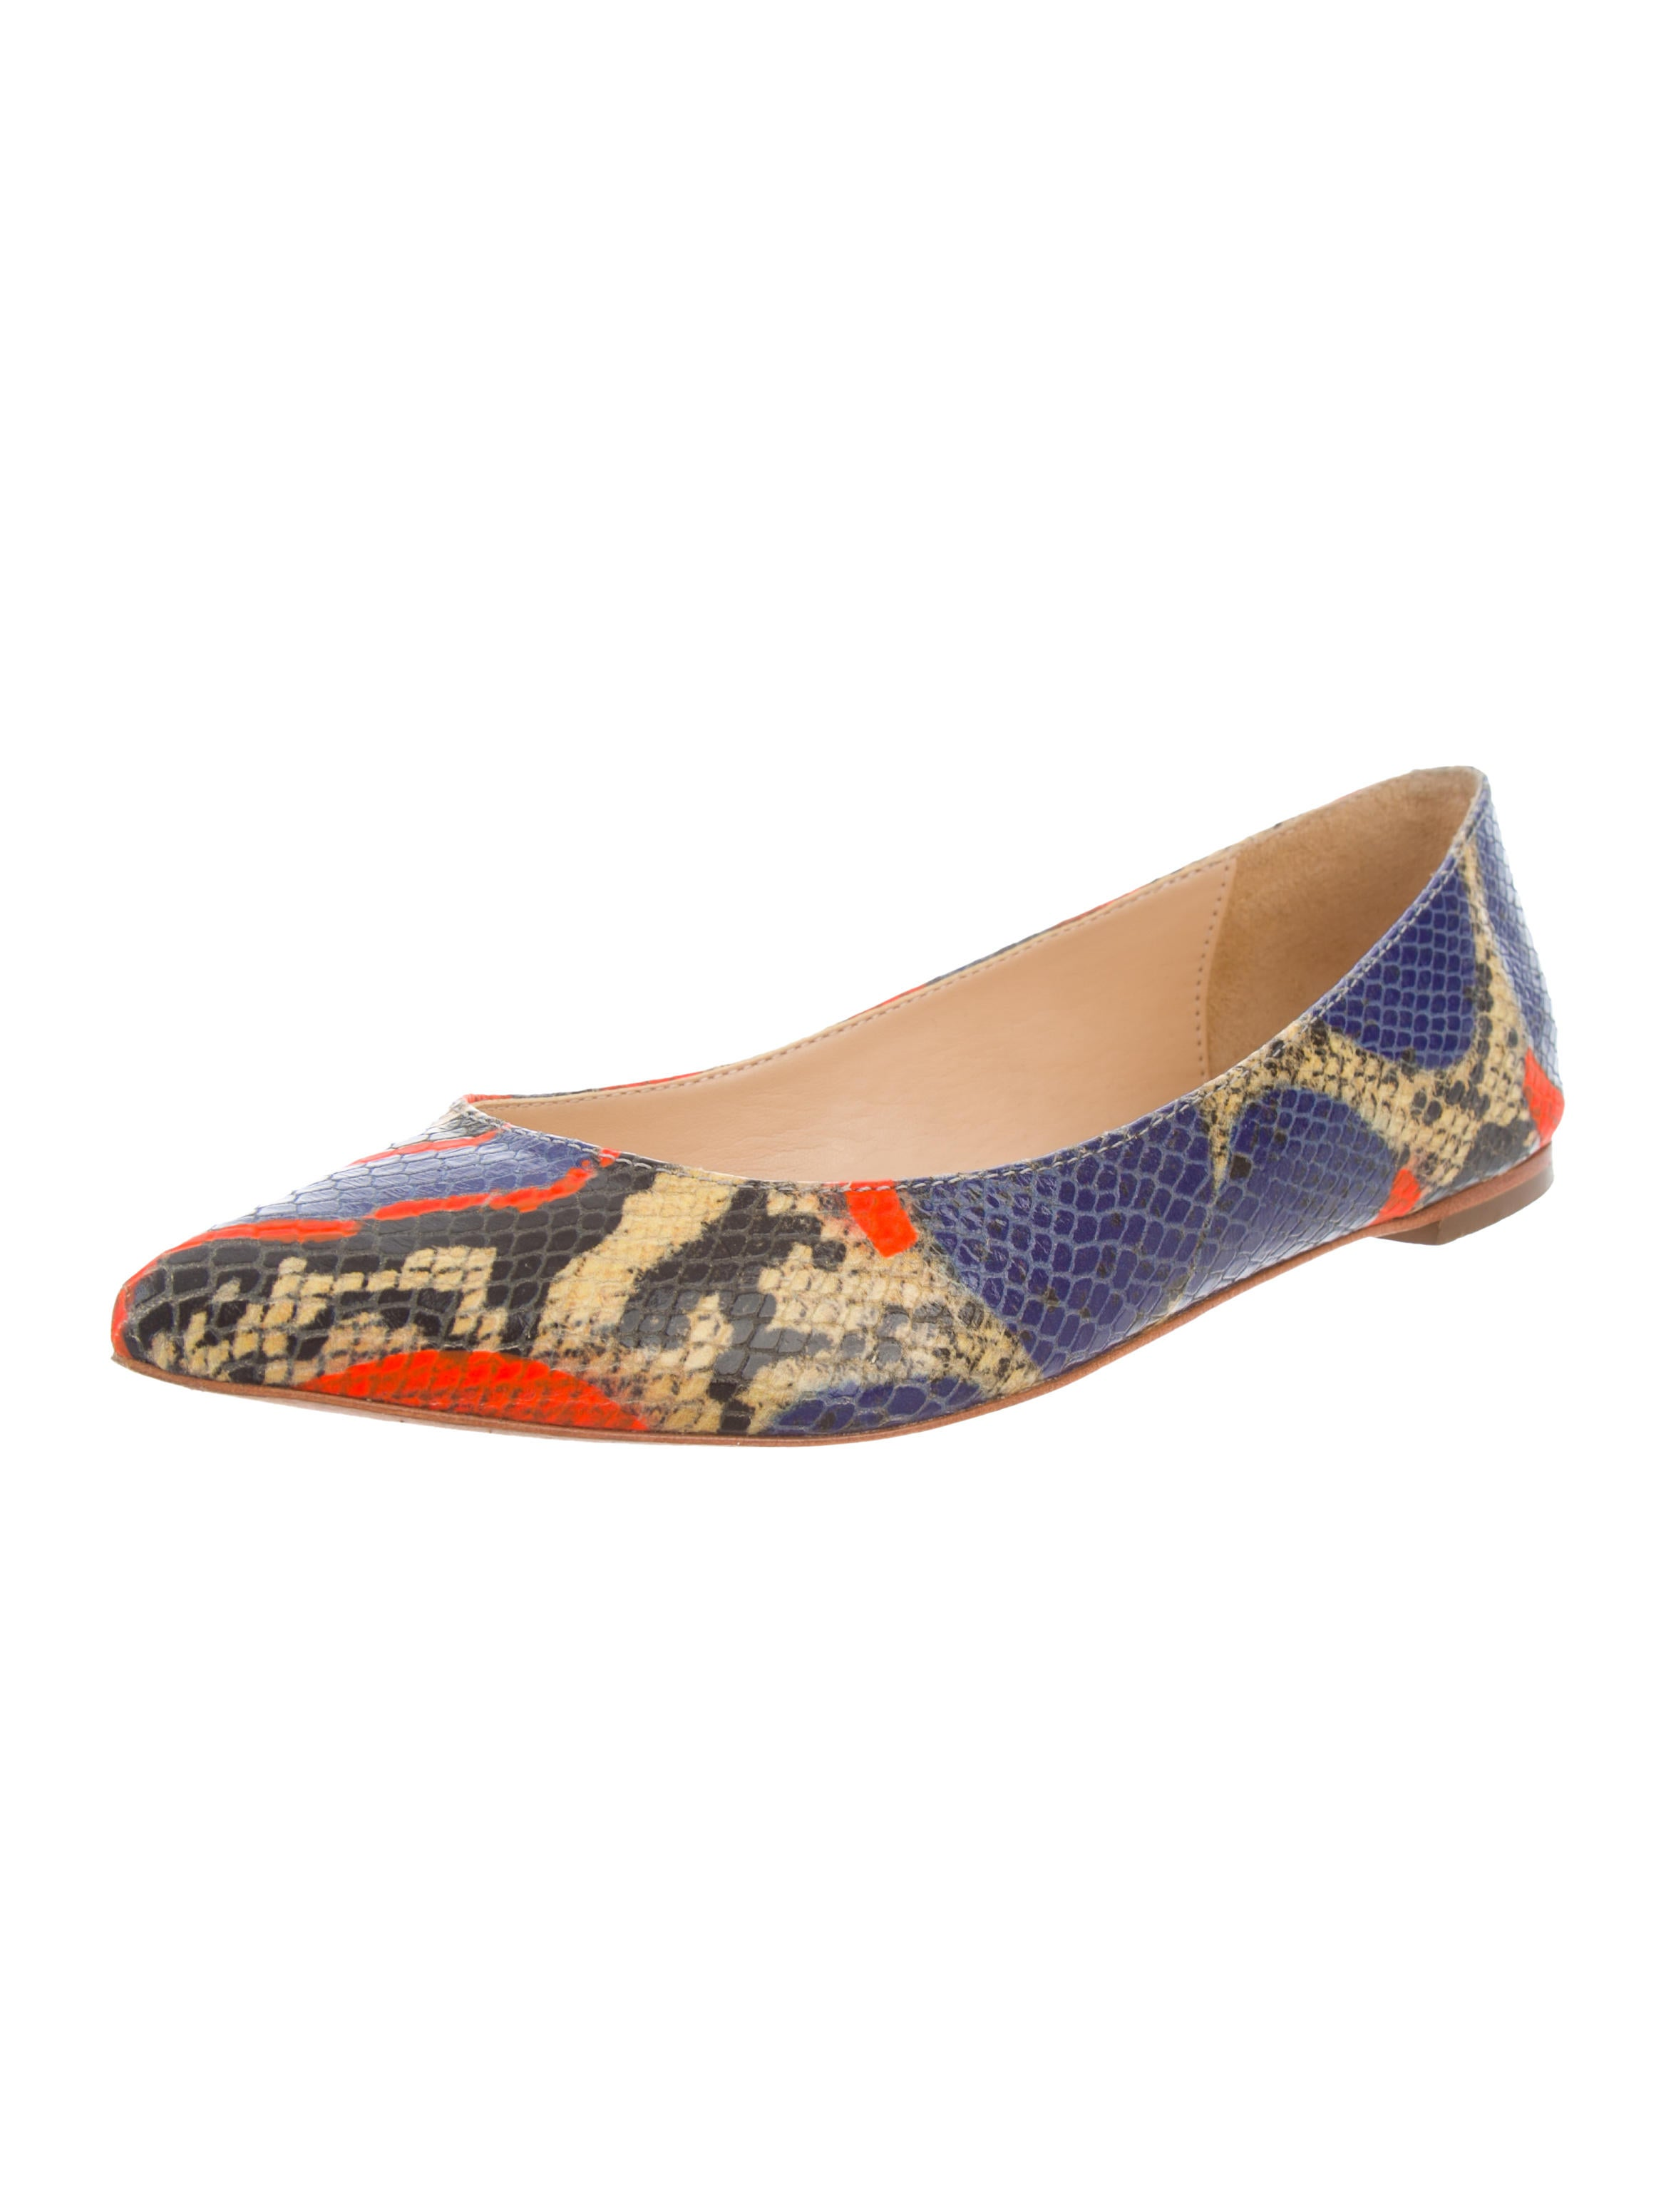 buy cheap discount cheap sale professional Loeffler Randall Printed Embossed Leather Flats collections cheap price QBj7n6